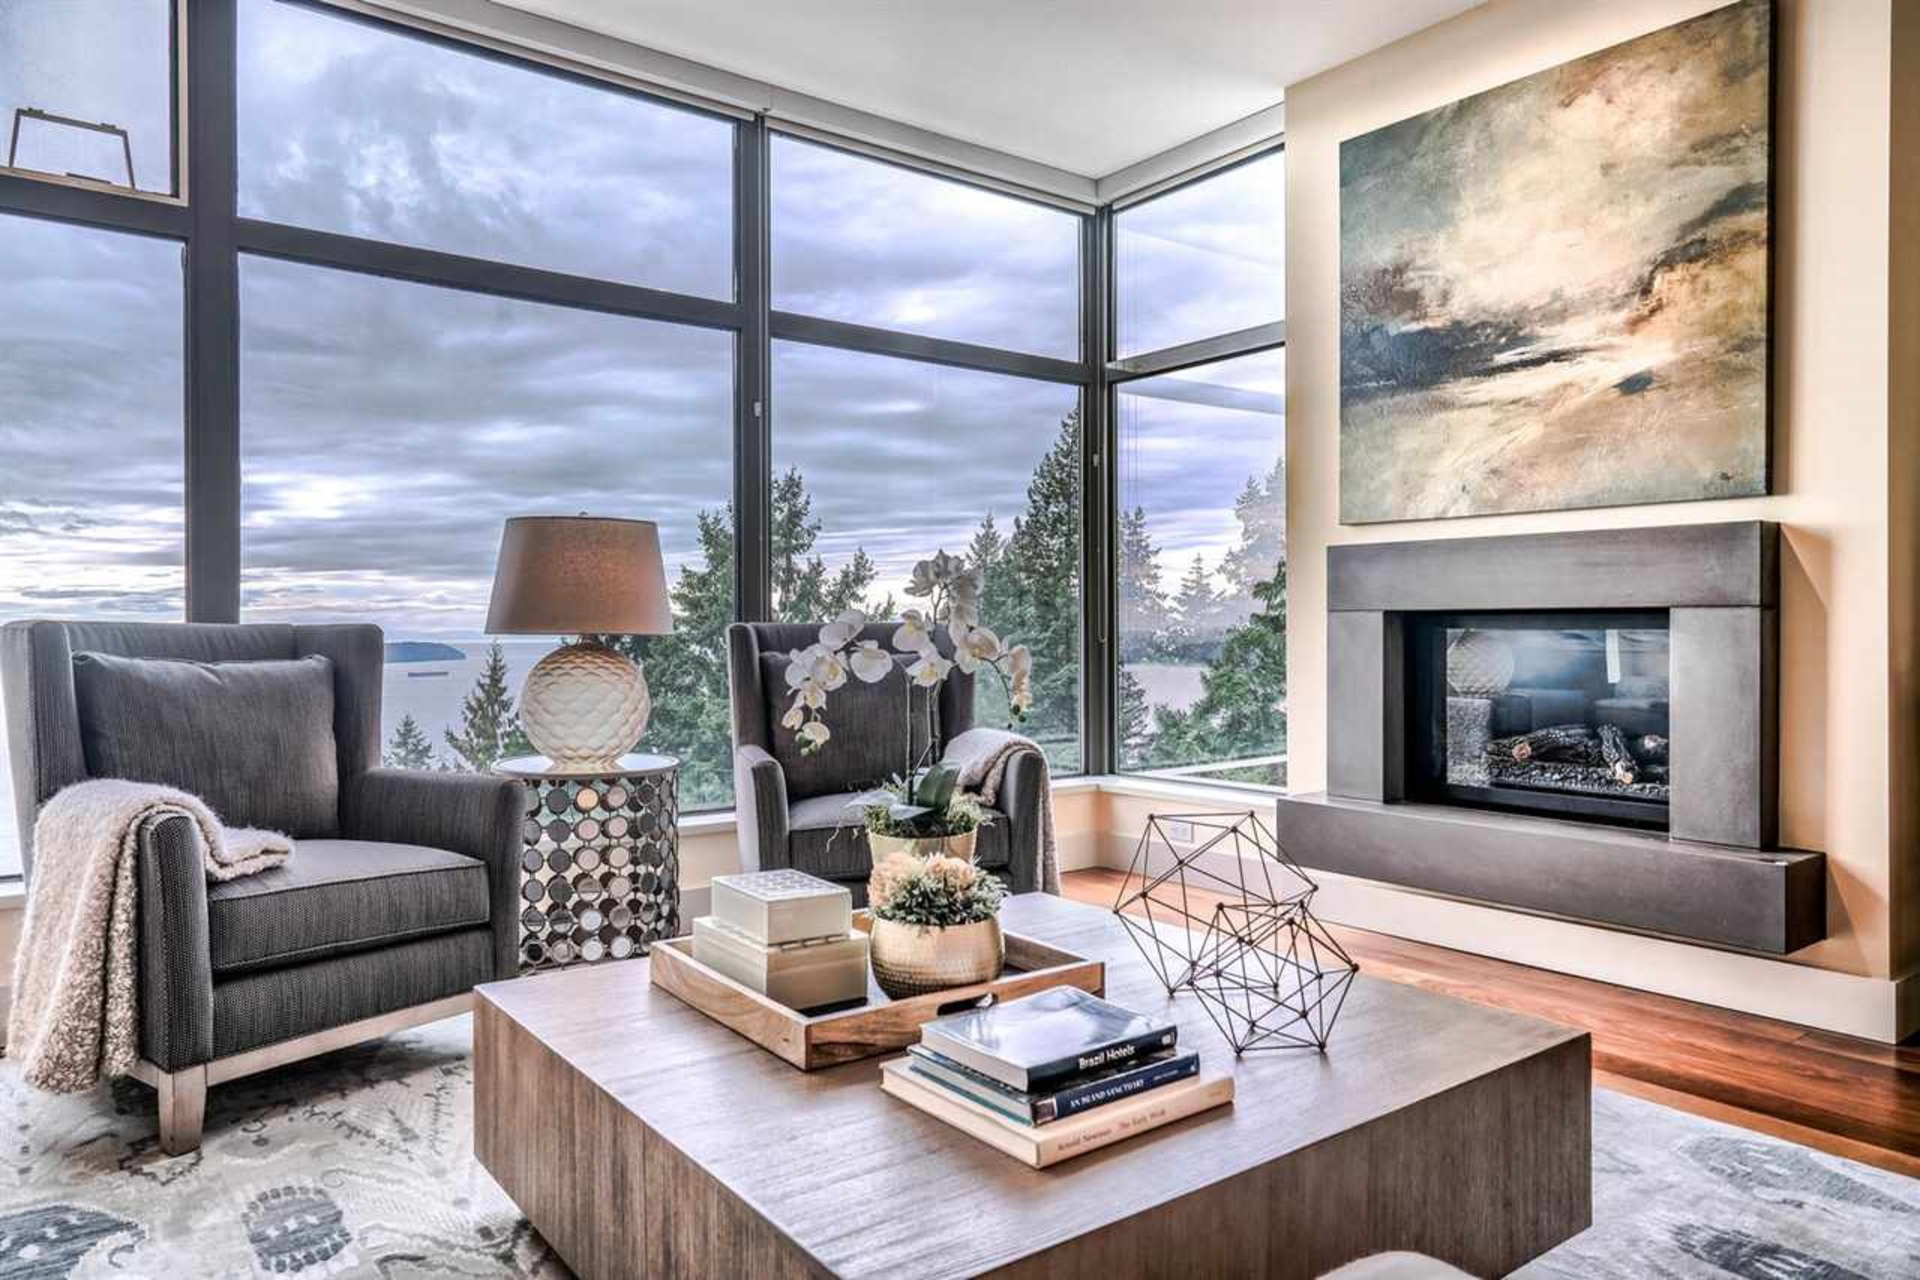 262529205-5 at 1103 - 3355 Cypress, Cypress, West Vancouver